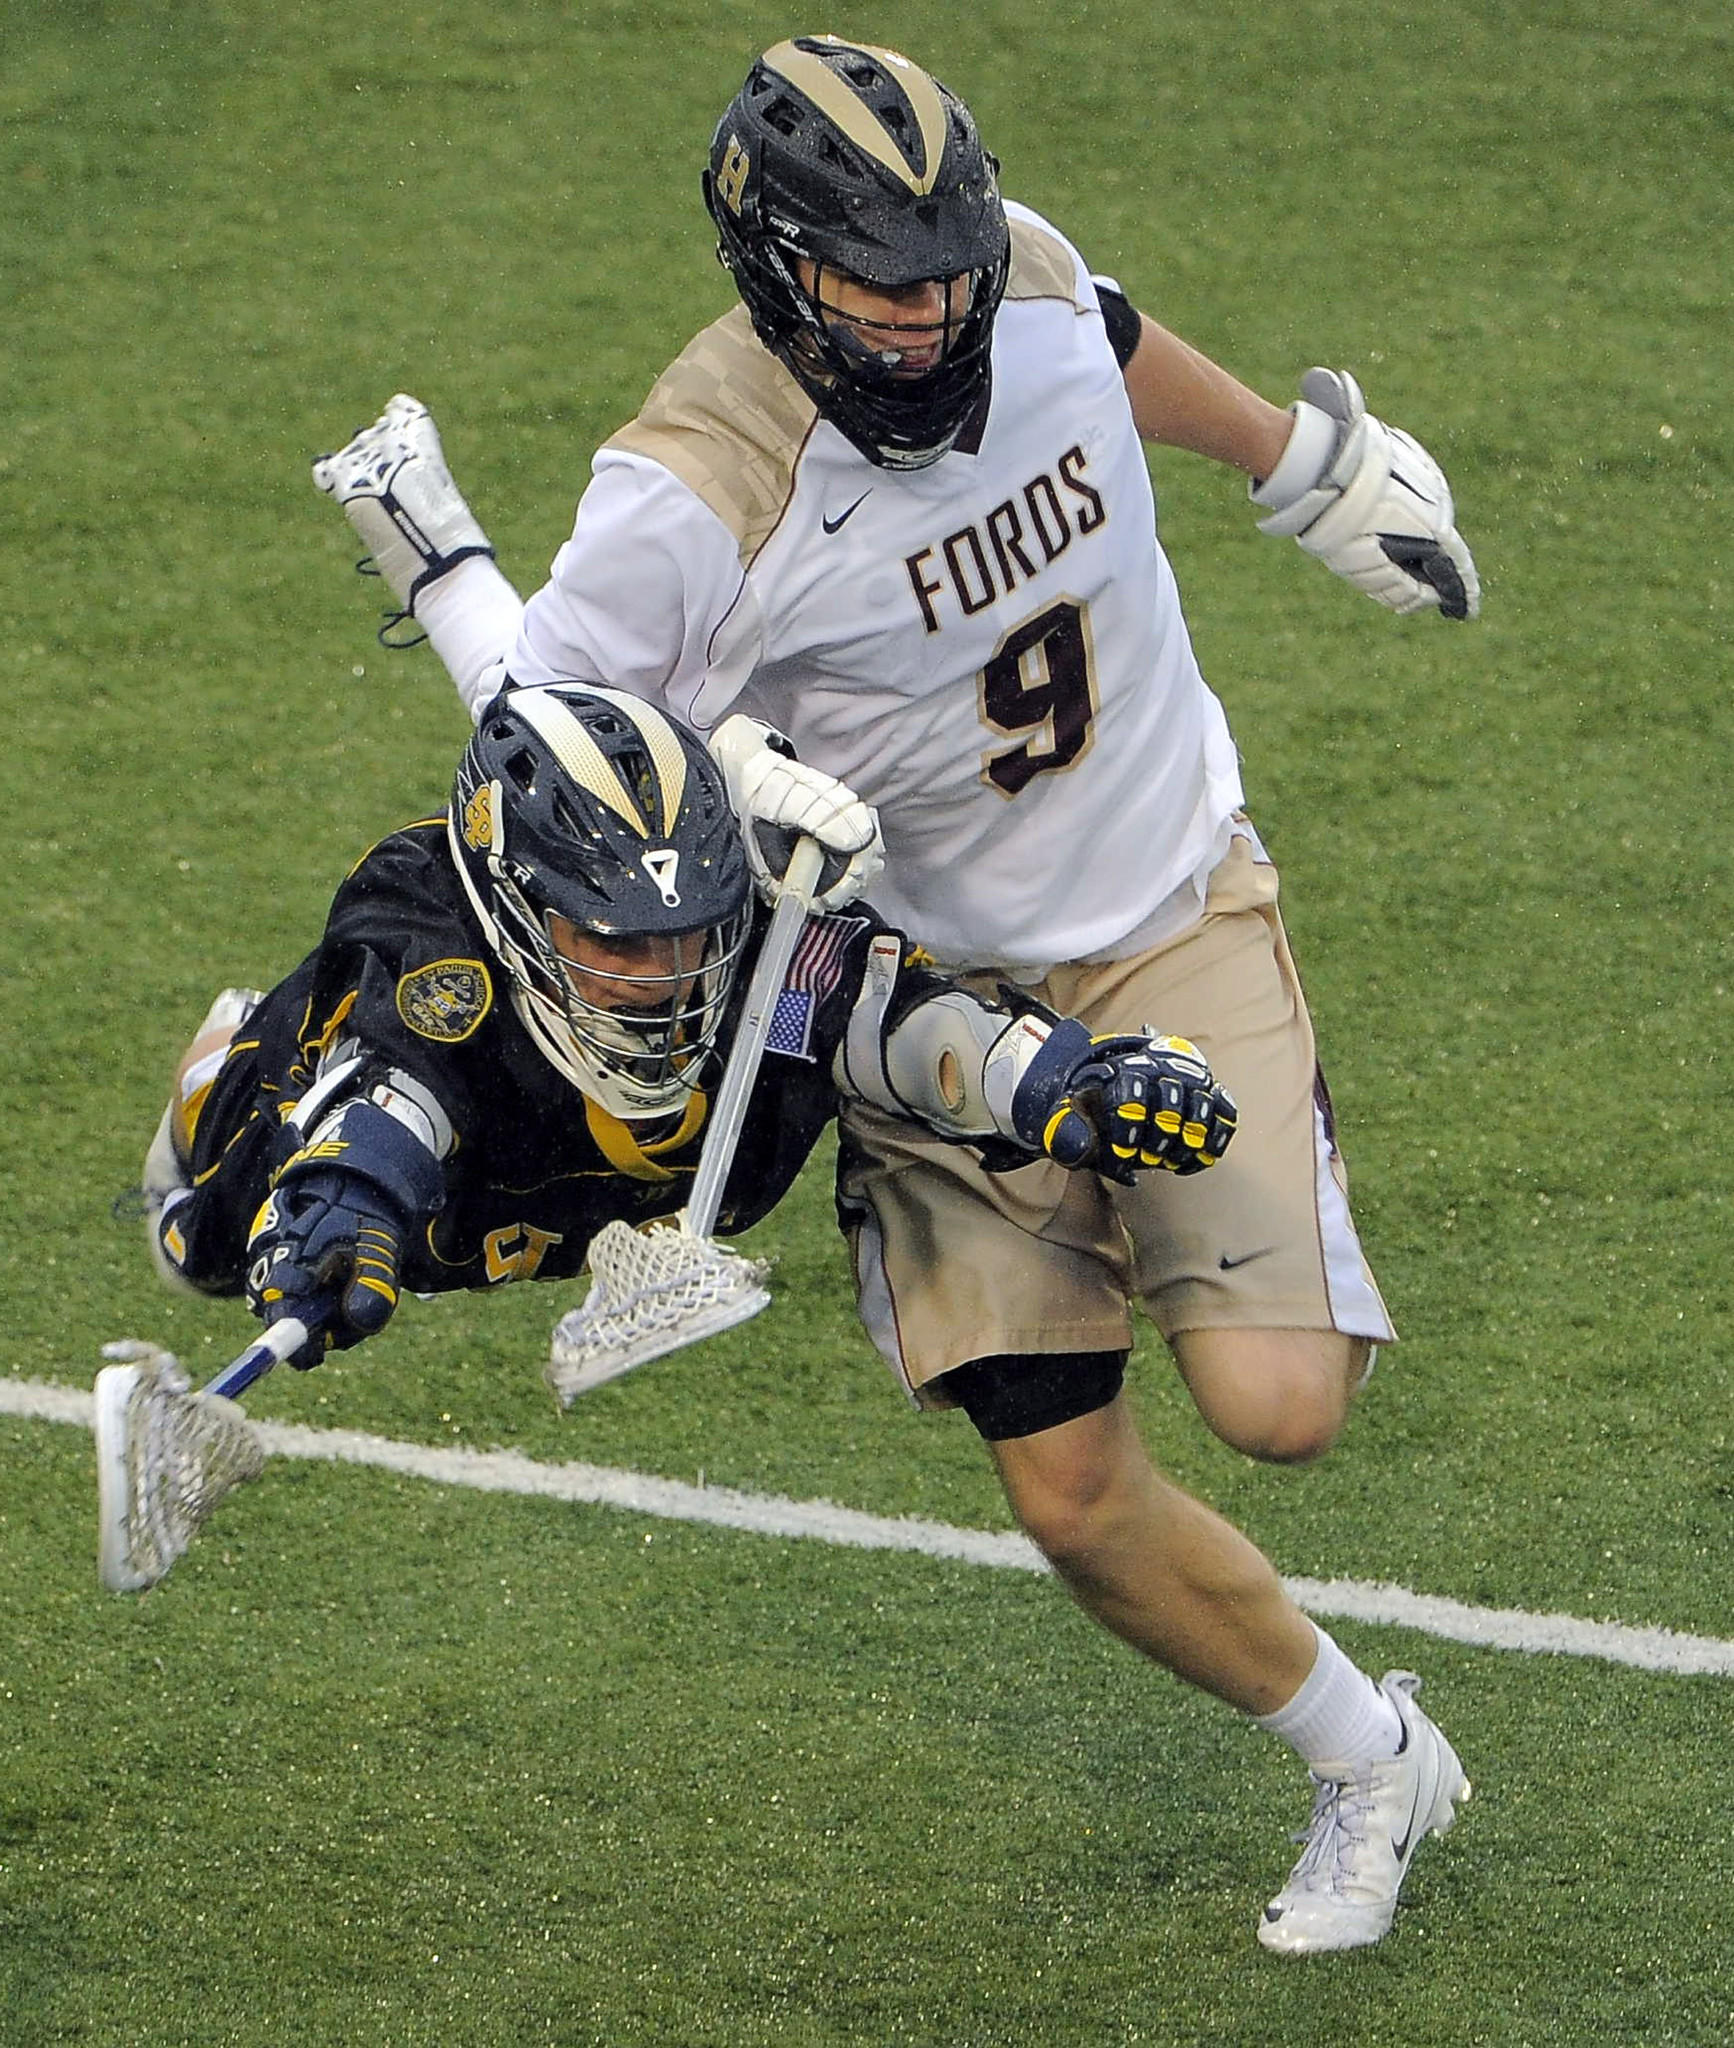 St. Paul's attackman Carter Flaig dives in front of Haverford defenseman Noah Lejman (9).